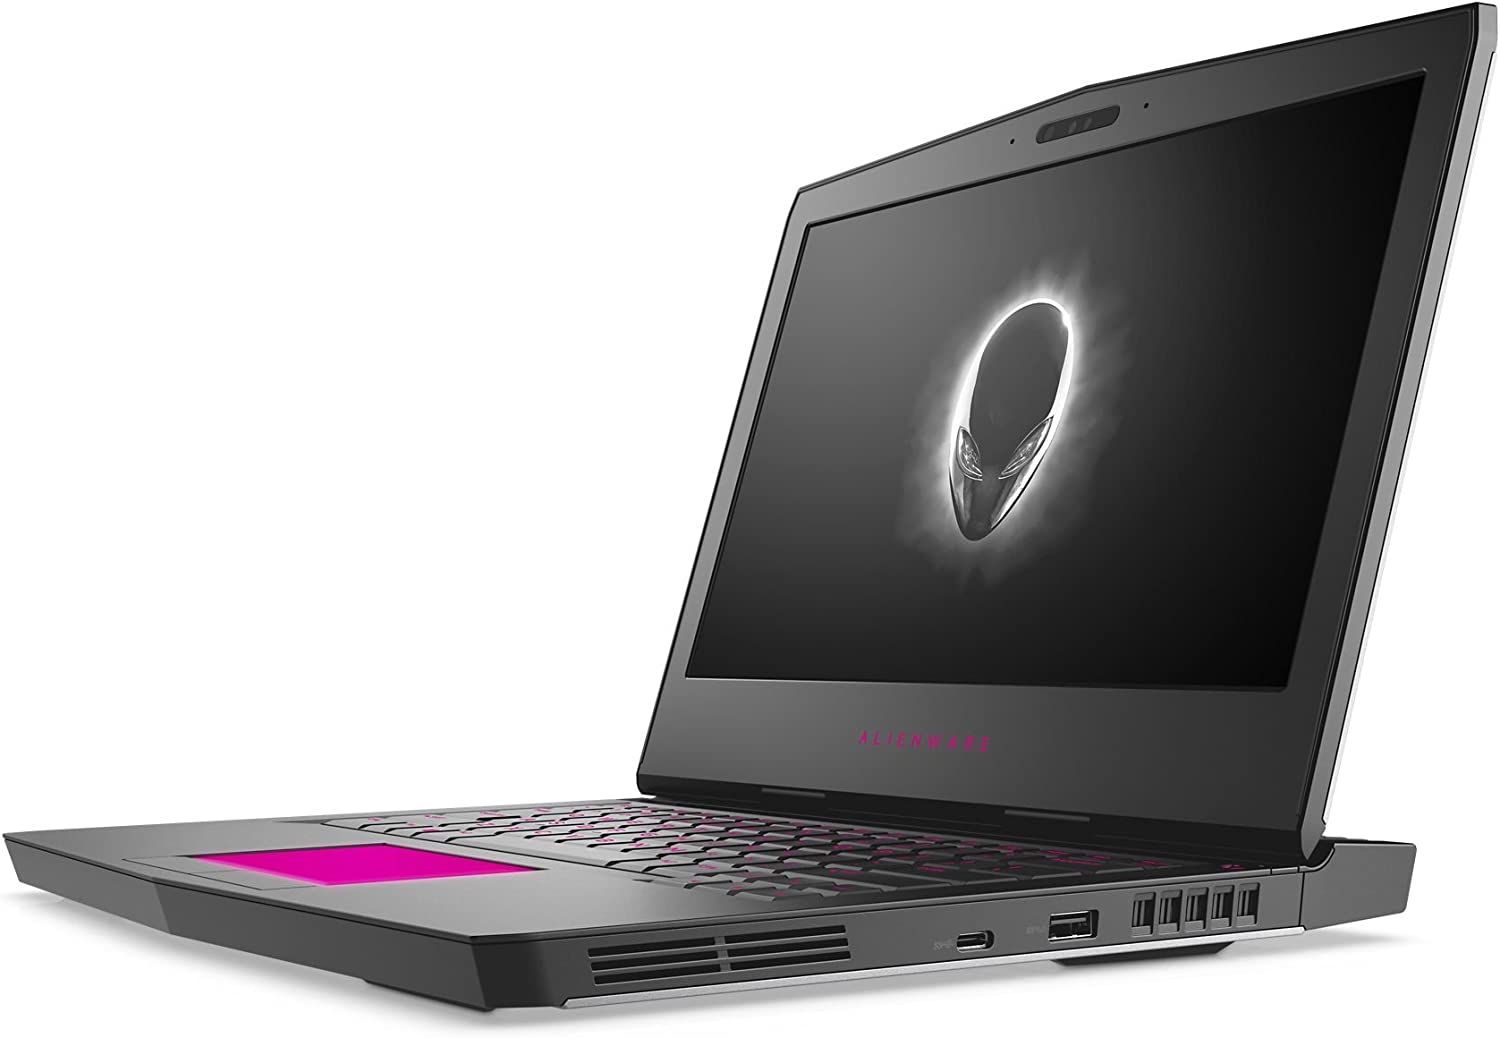 Alienware AW13R3-7420SLV-PUS 13.3in Gaming Laptop (7th Generation Intel Core i7, 16GB RAM, 512 SSD, Silver) VR Ready with NVIDIA GTX 1060 (Renewed)